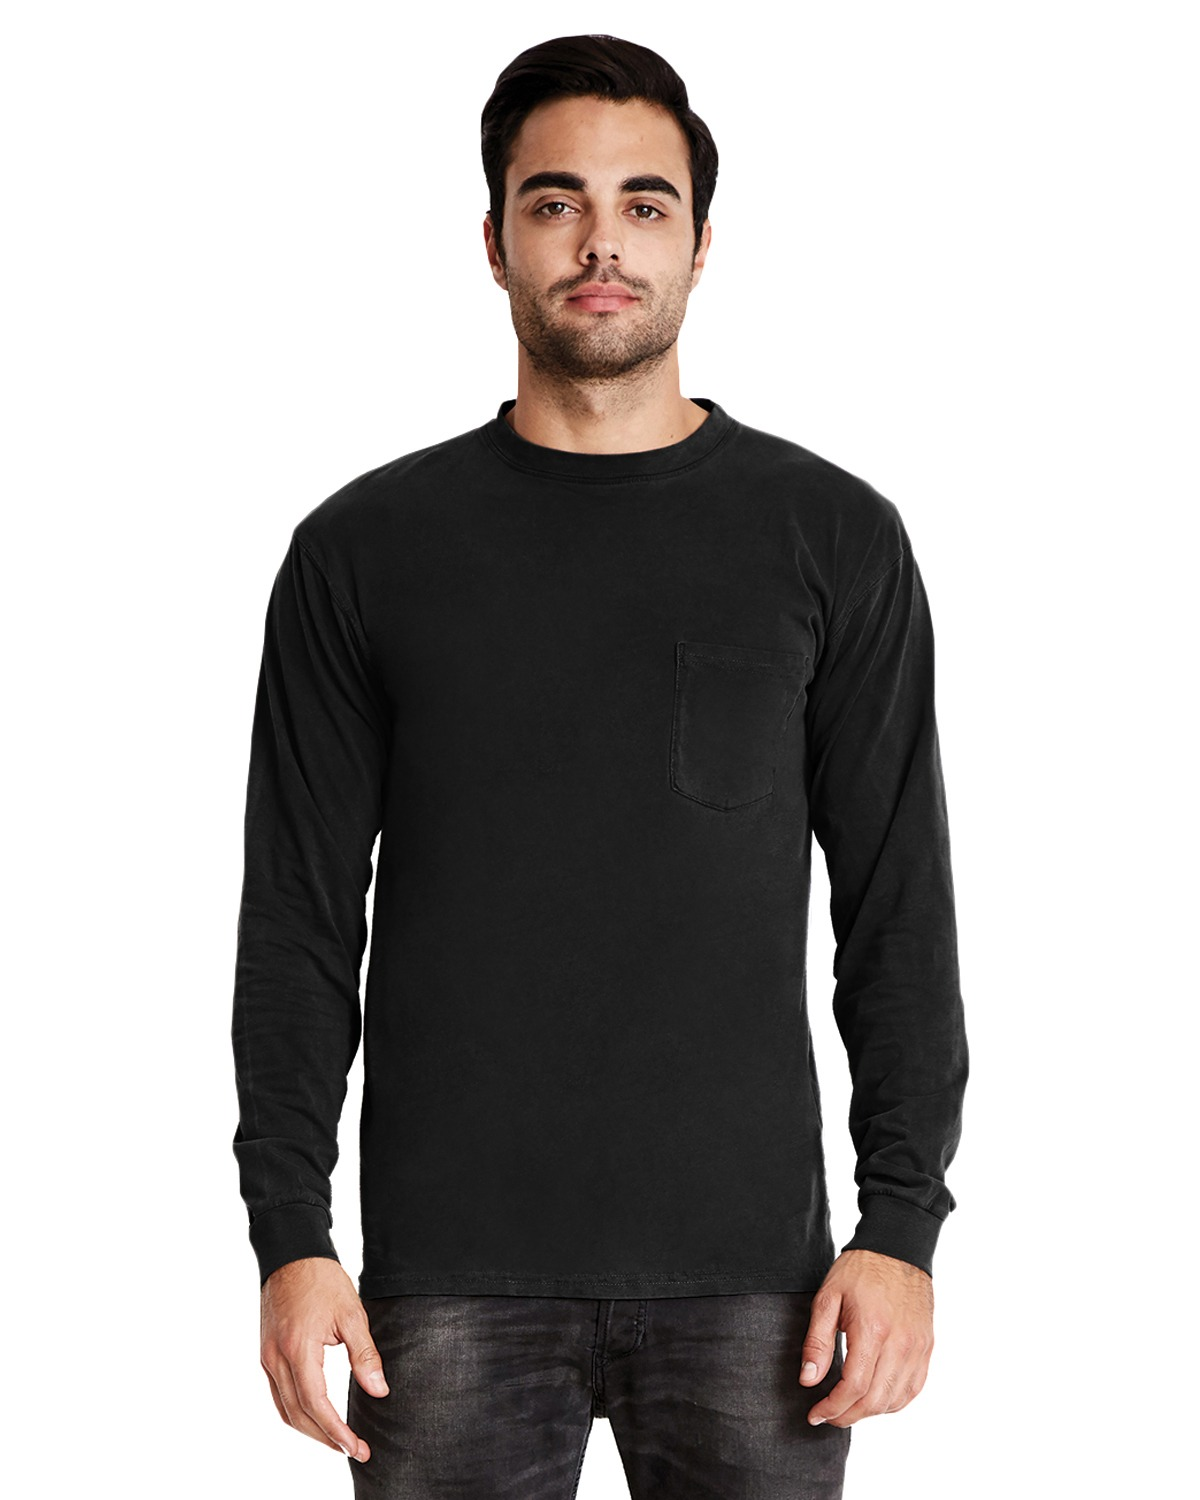 Next Level Apparel 7451 - Adult Inspired Dye Long-Sleeve ...